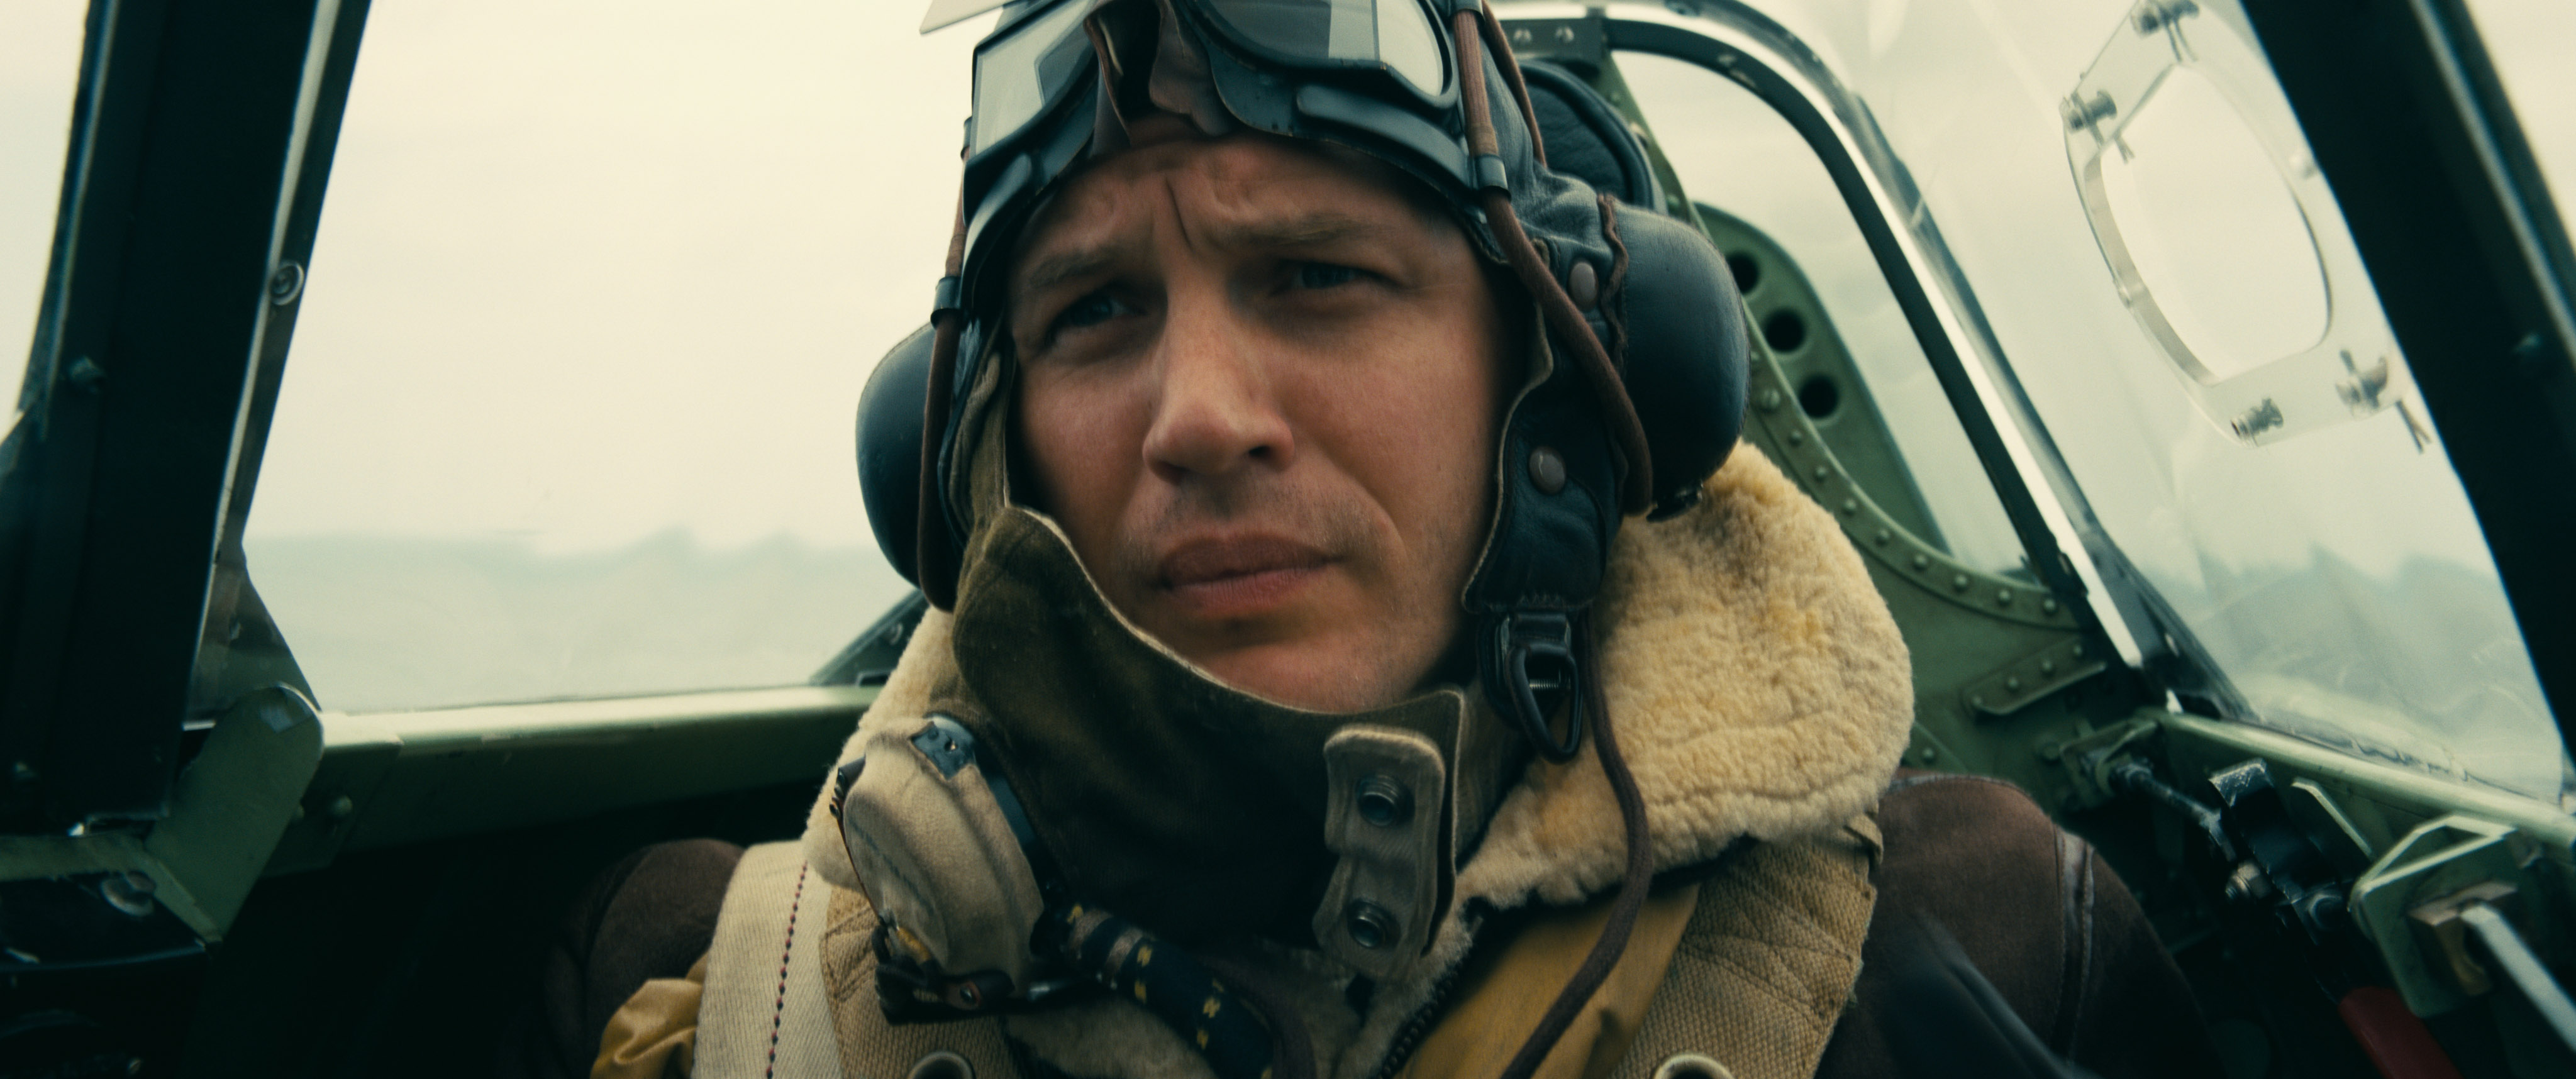 Tom Hardy delivers yet another incredible eye performance in Dunkirk